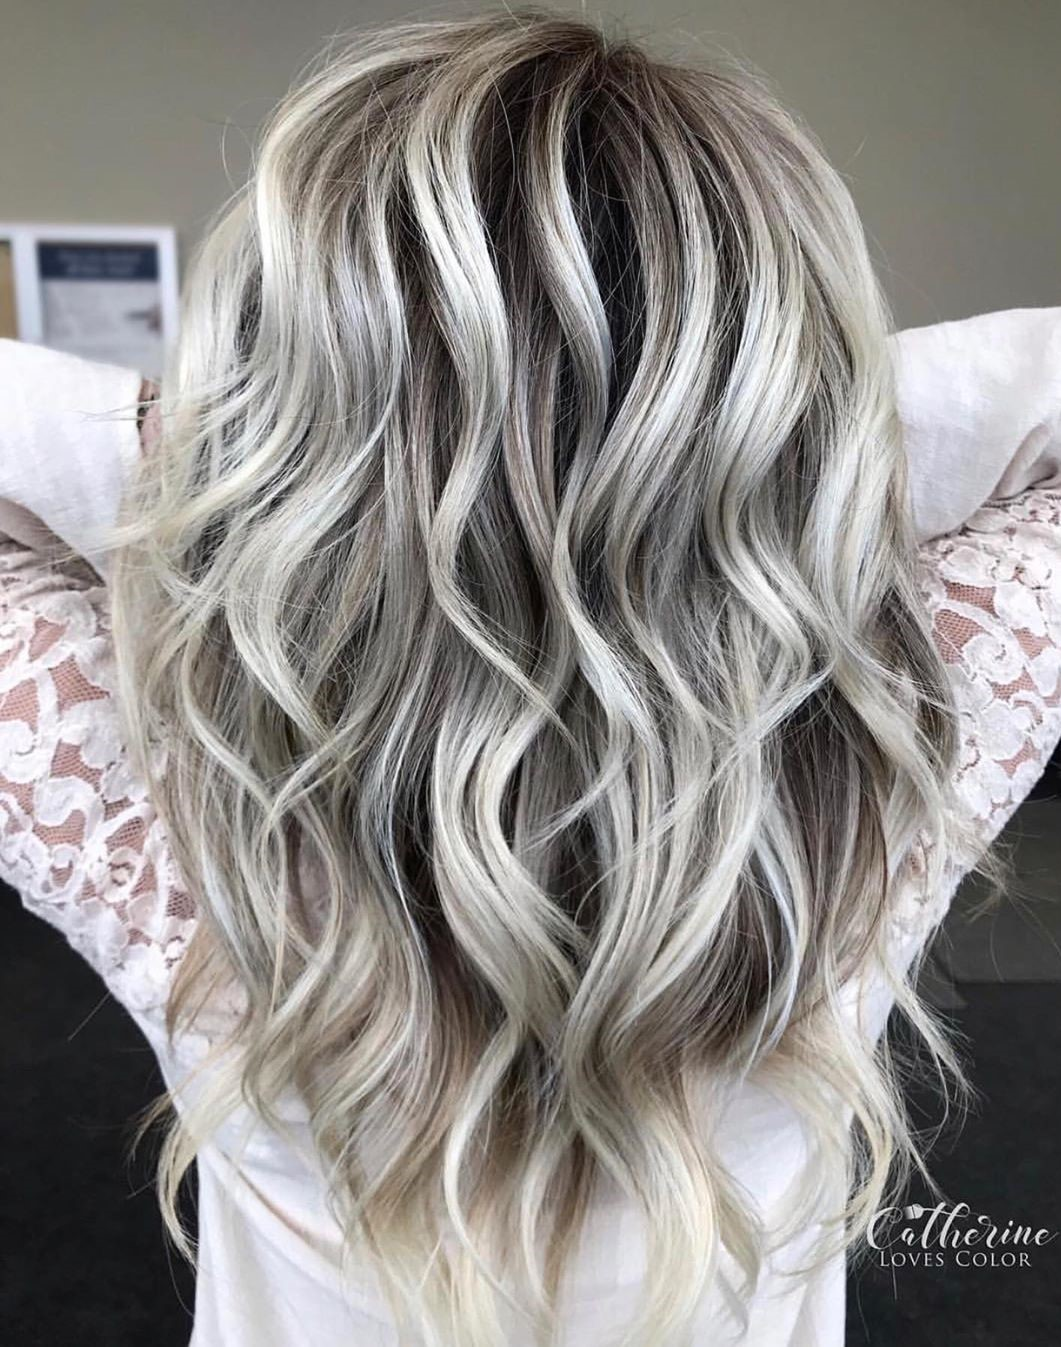 Silver Hair with Very Dark Roots